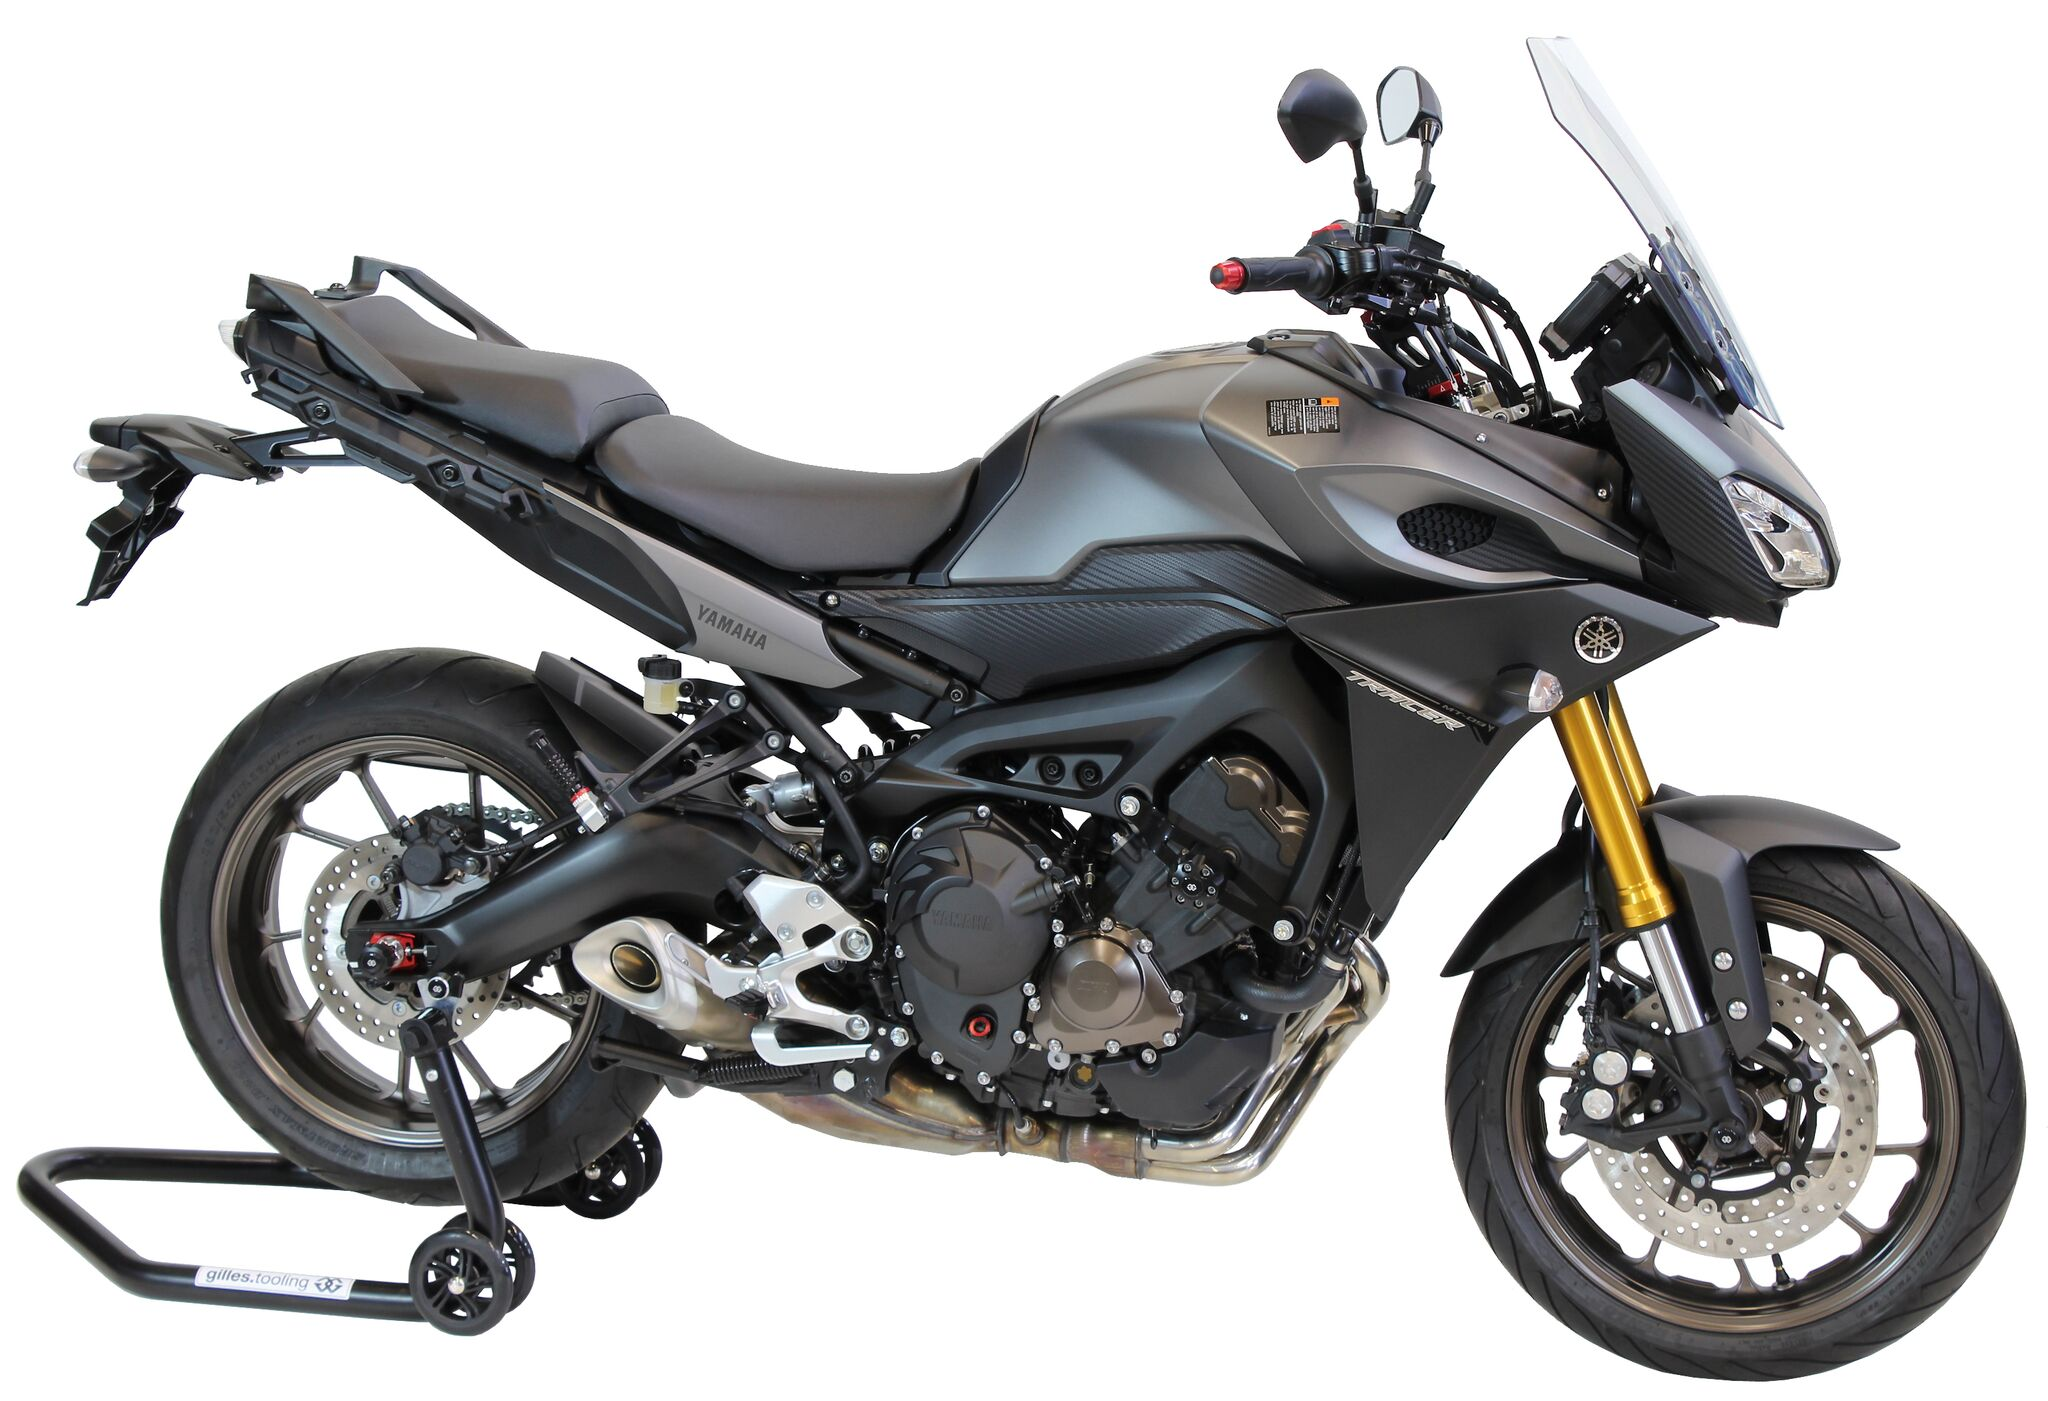 yamaha mt 09 tracer baujahr 2014 bis 2017 bikes gilles tooling. Black Bedroom Furniture Sets. Home Design Ideas